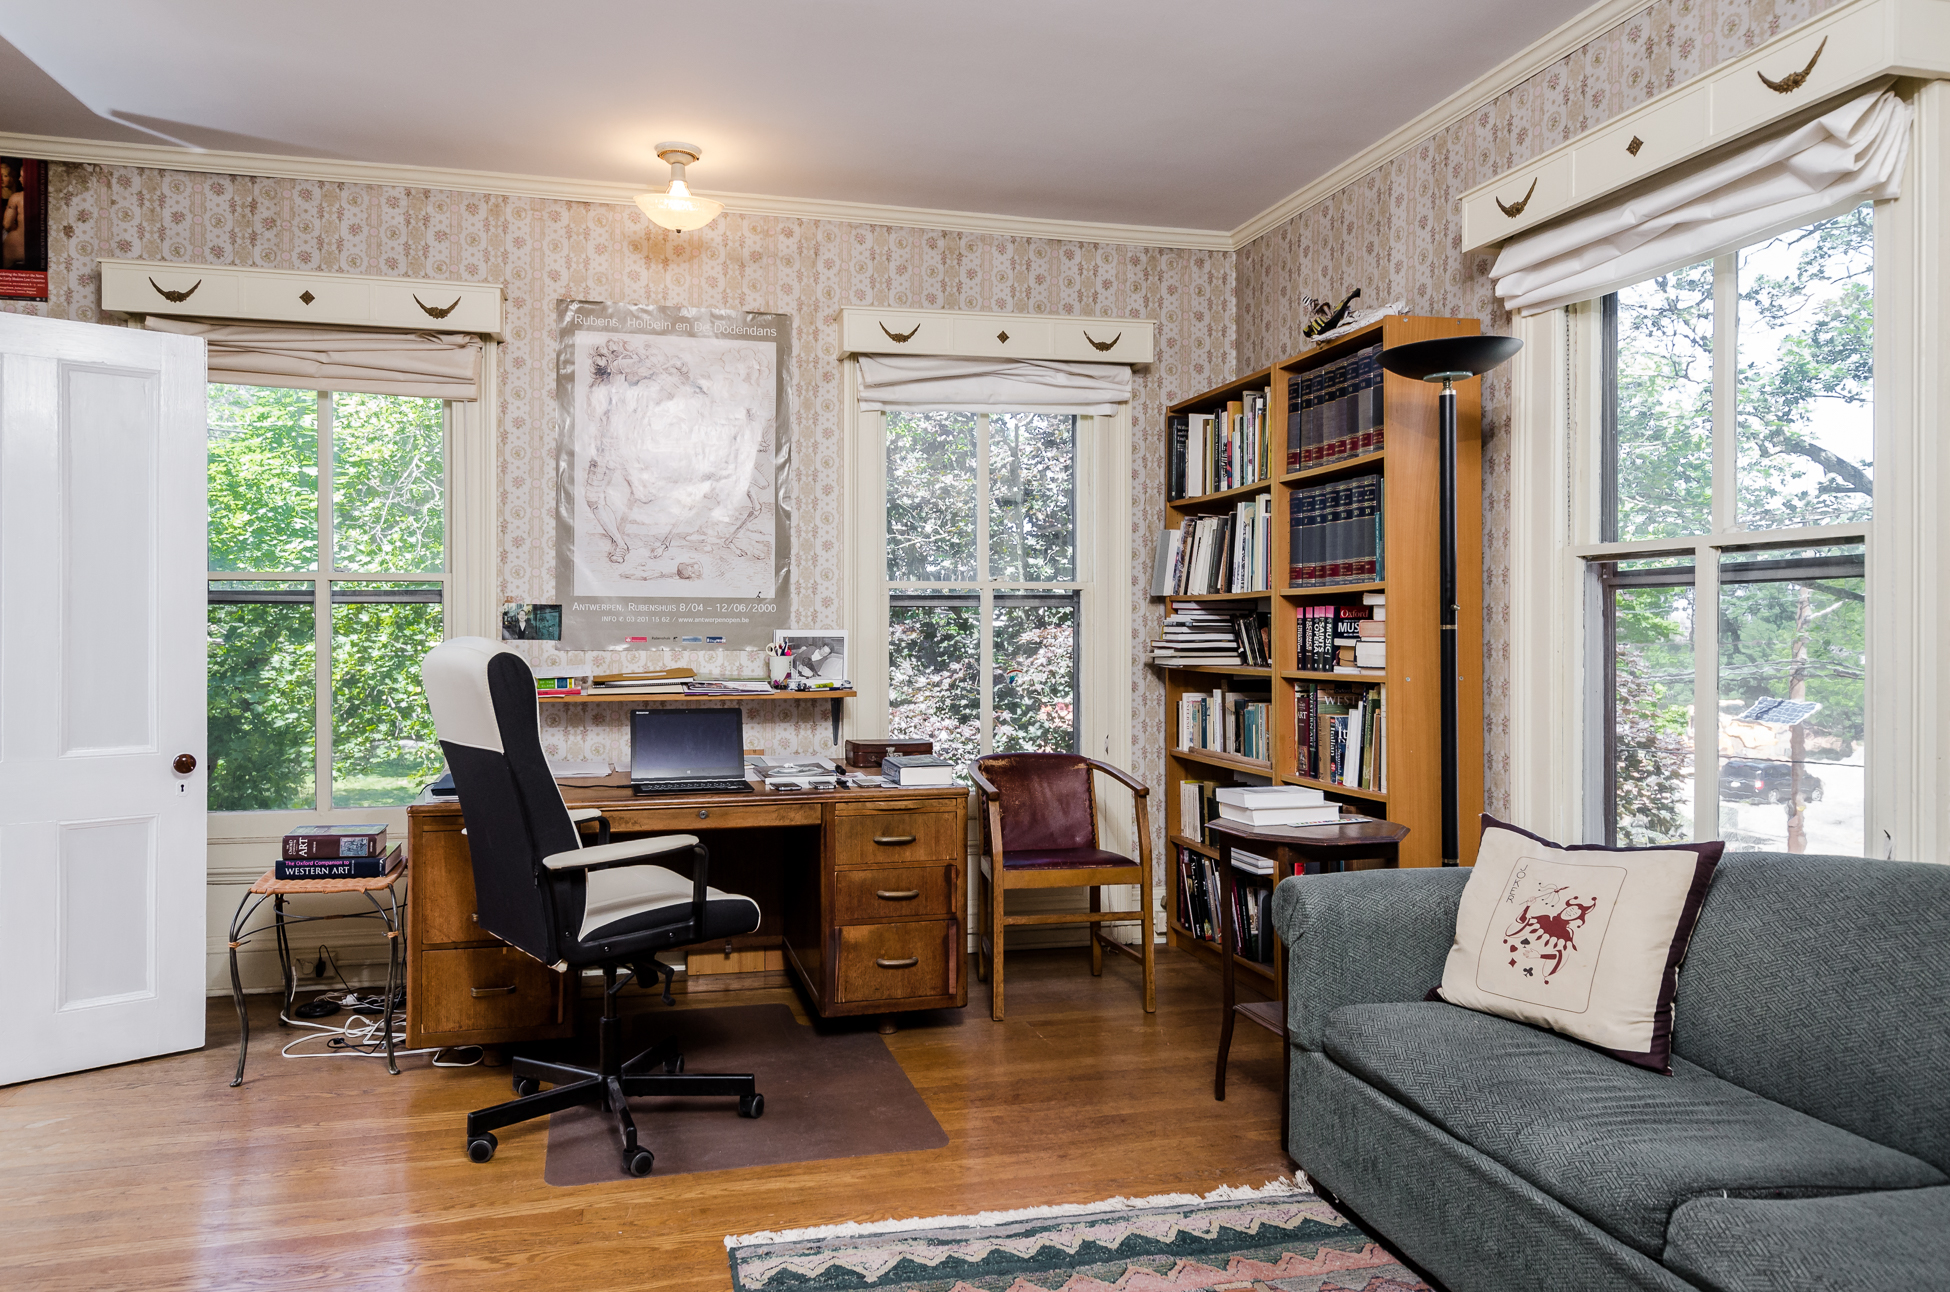 Additional photo for property listing at Capturing All The Grace Of Yesteryear 23 South Adelaide Avenue Highland Park, Nueva Jersey 08904 Estados Unidos